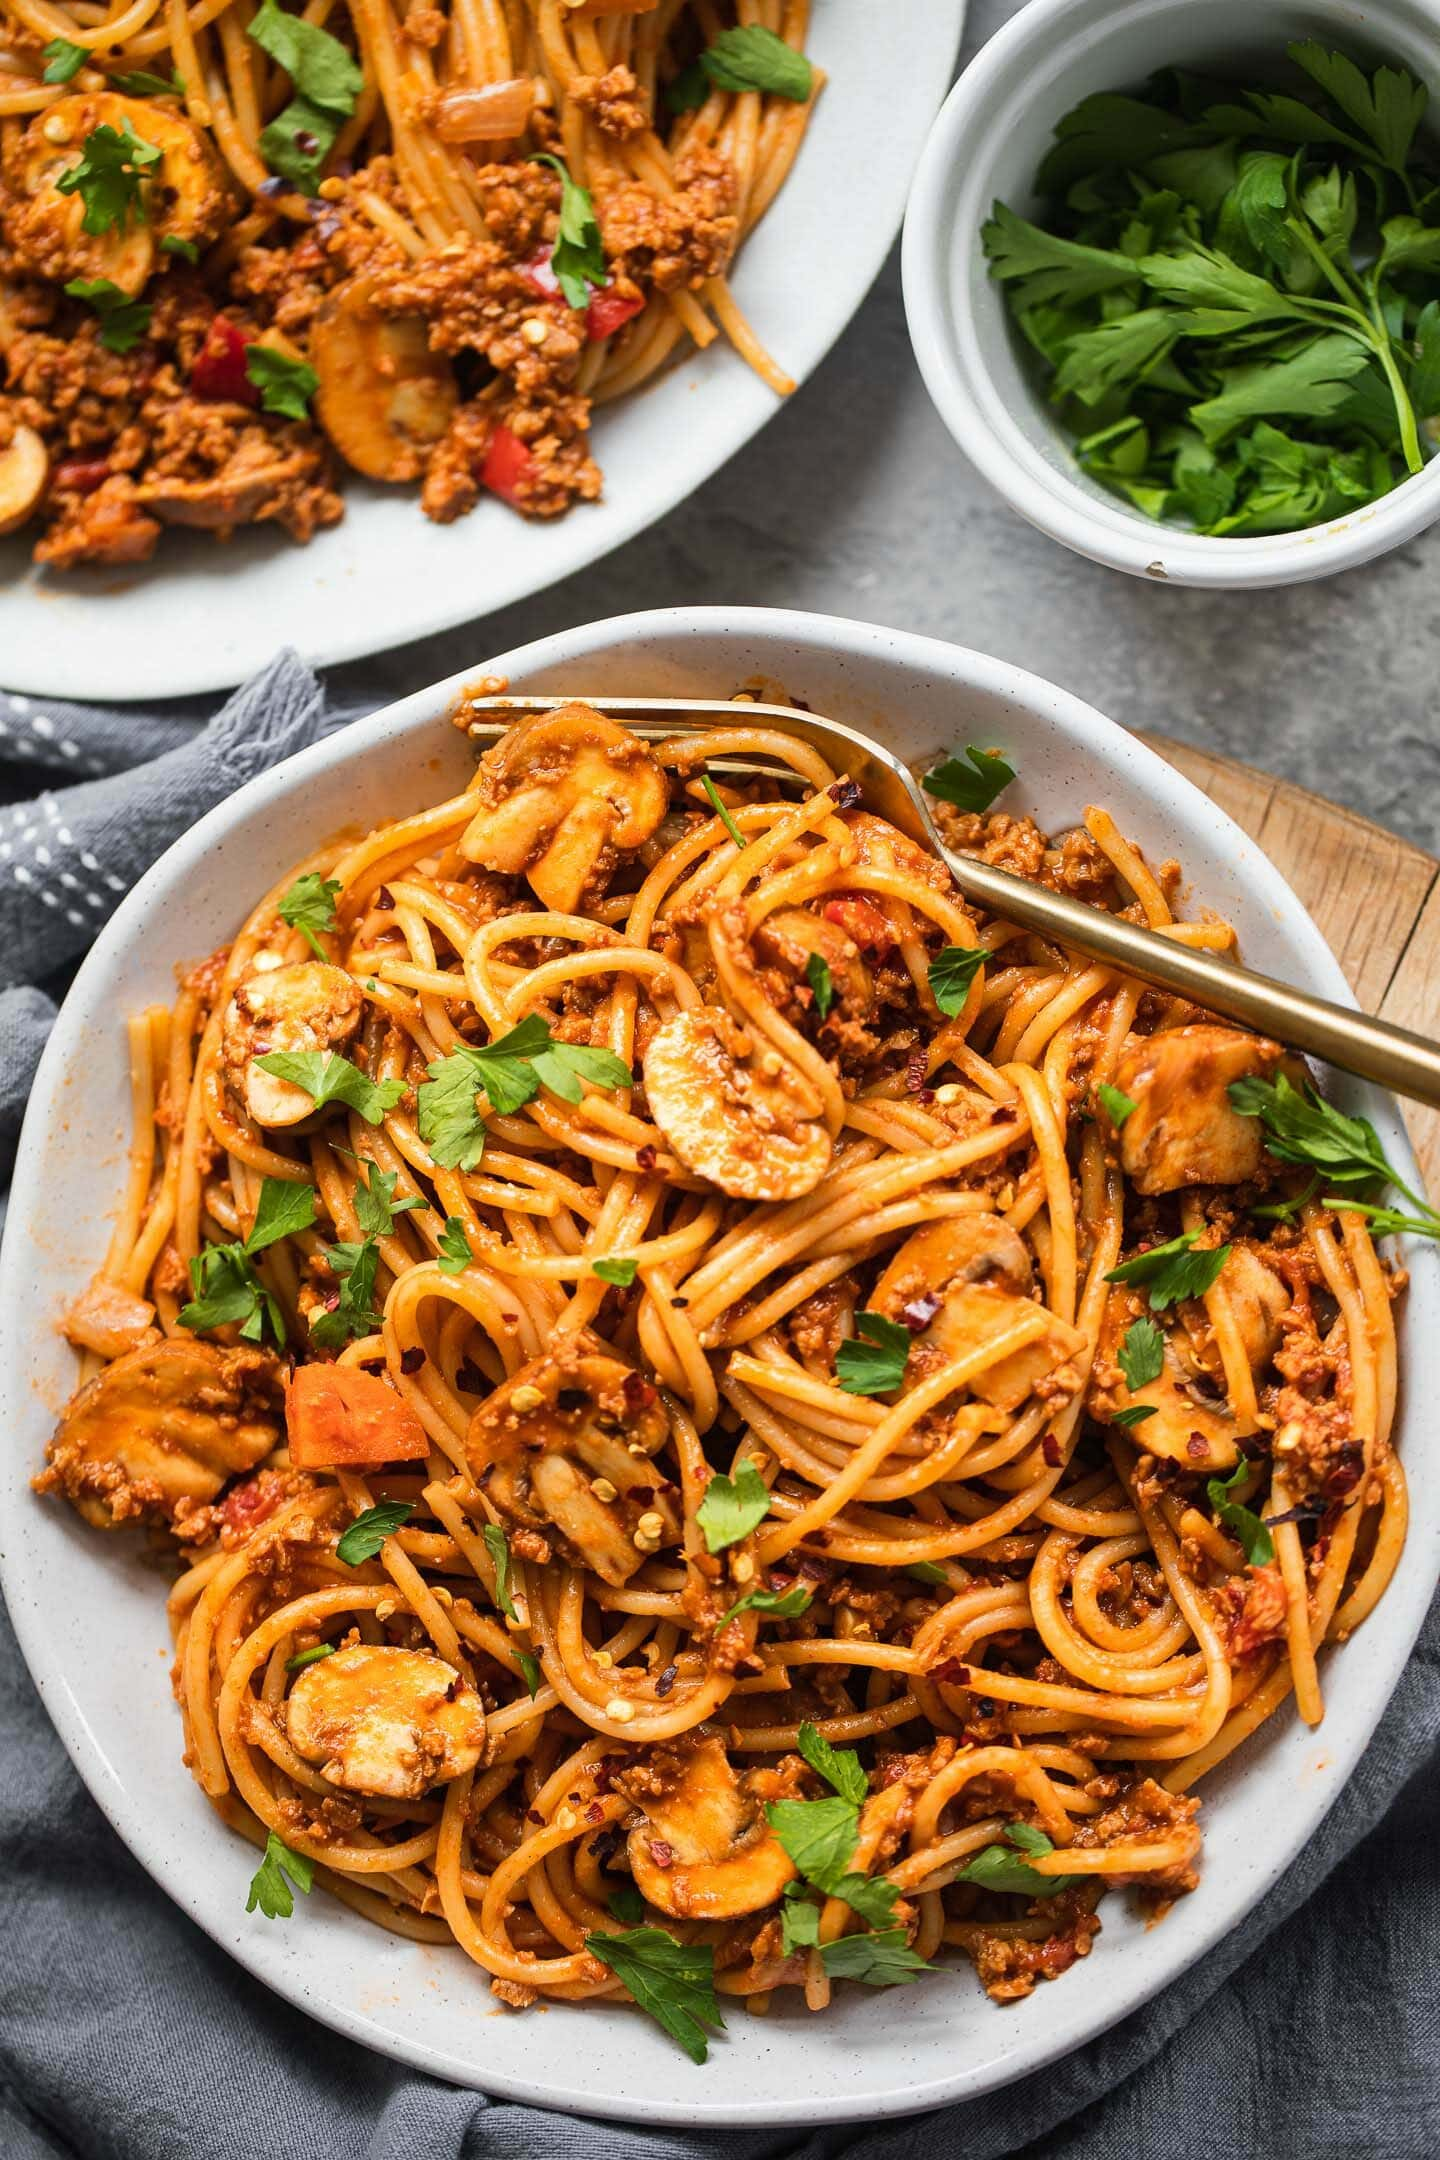 Vegetarian Bolognese with spaghetti in a bowl